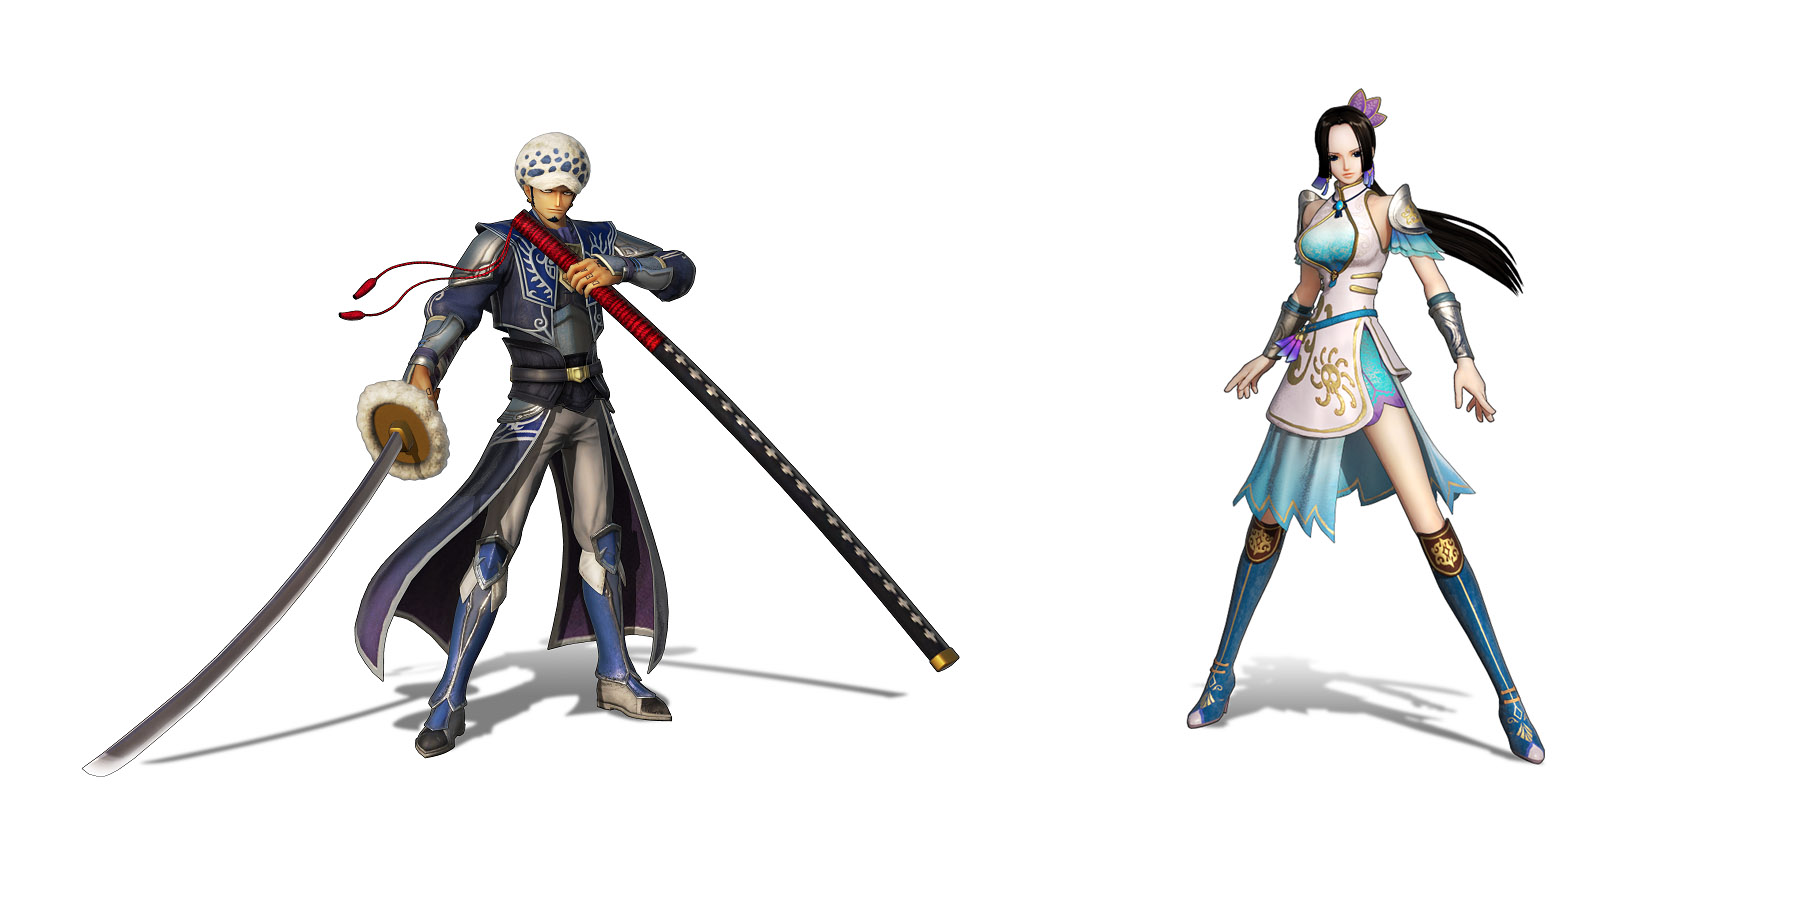 JP scéna: One Piece: Pirate Warriors 4 nebo Granblue Fantasy: Versus OPPW4 Pre Order Costumes 01 20 20